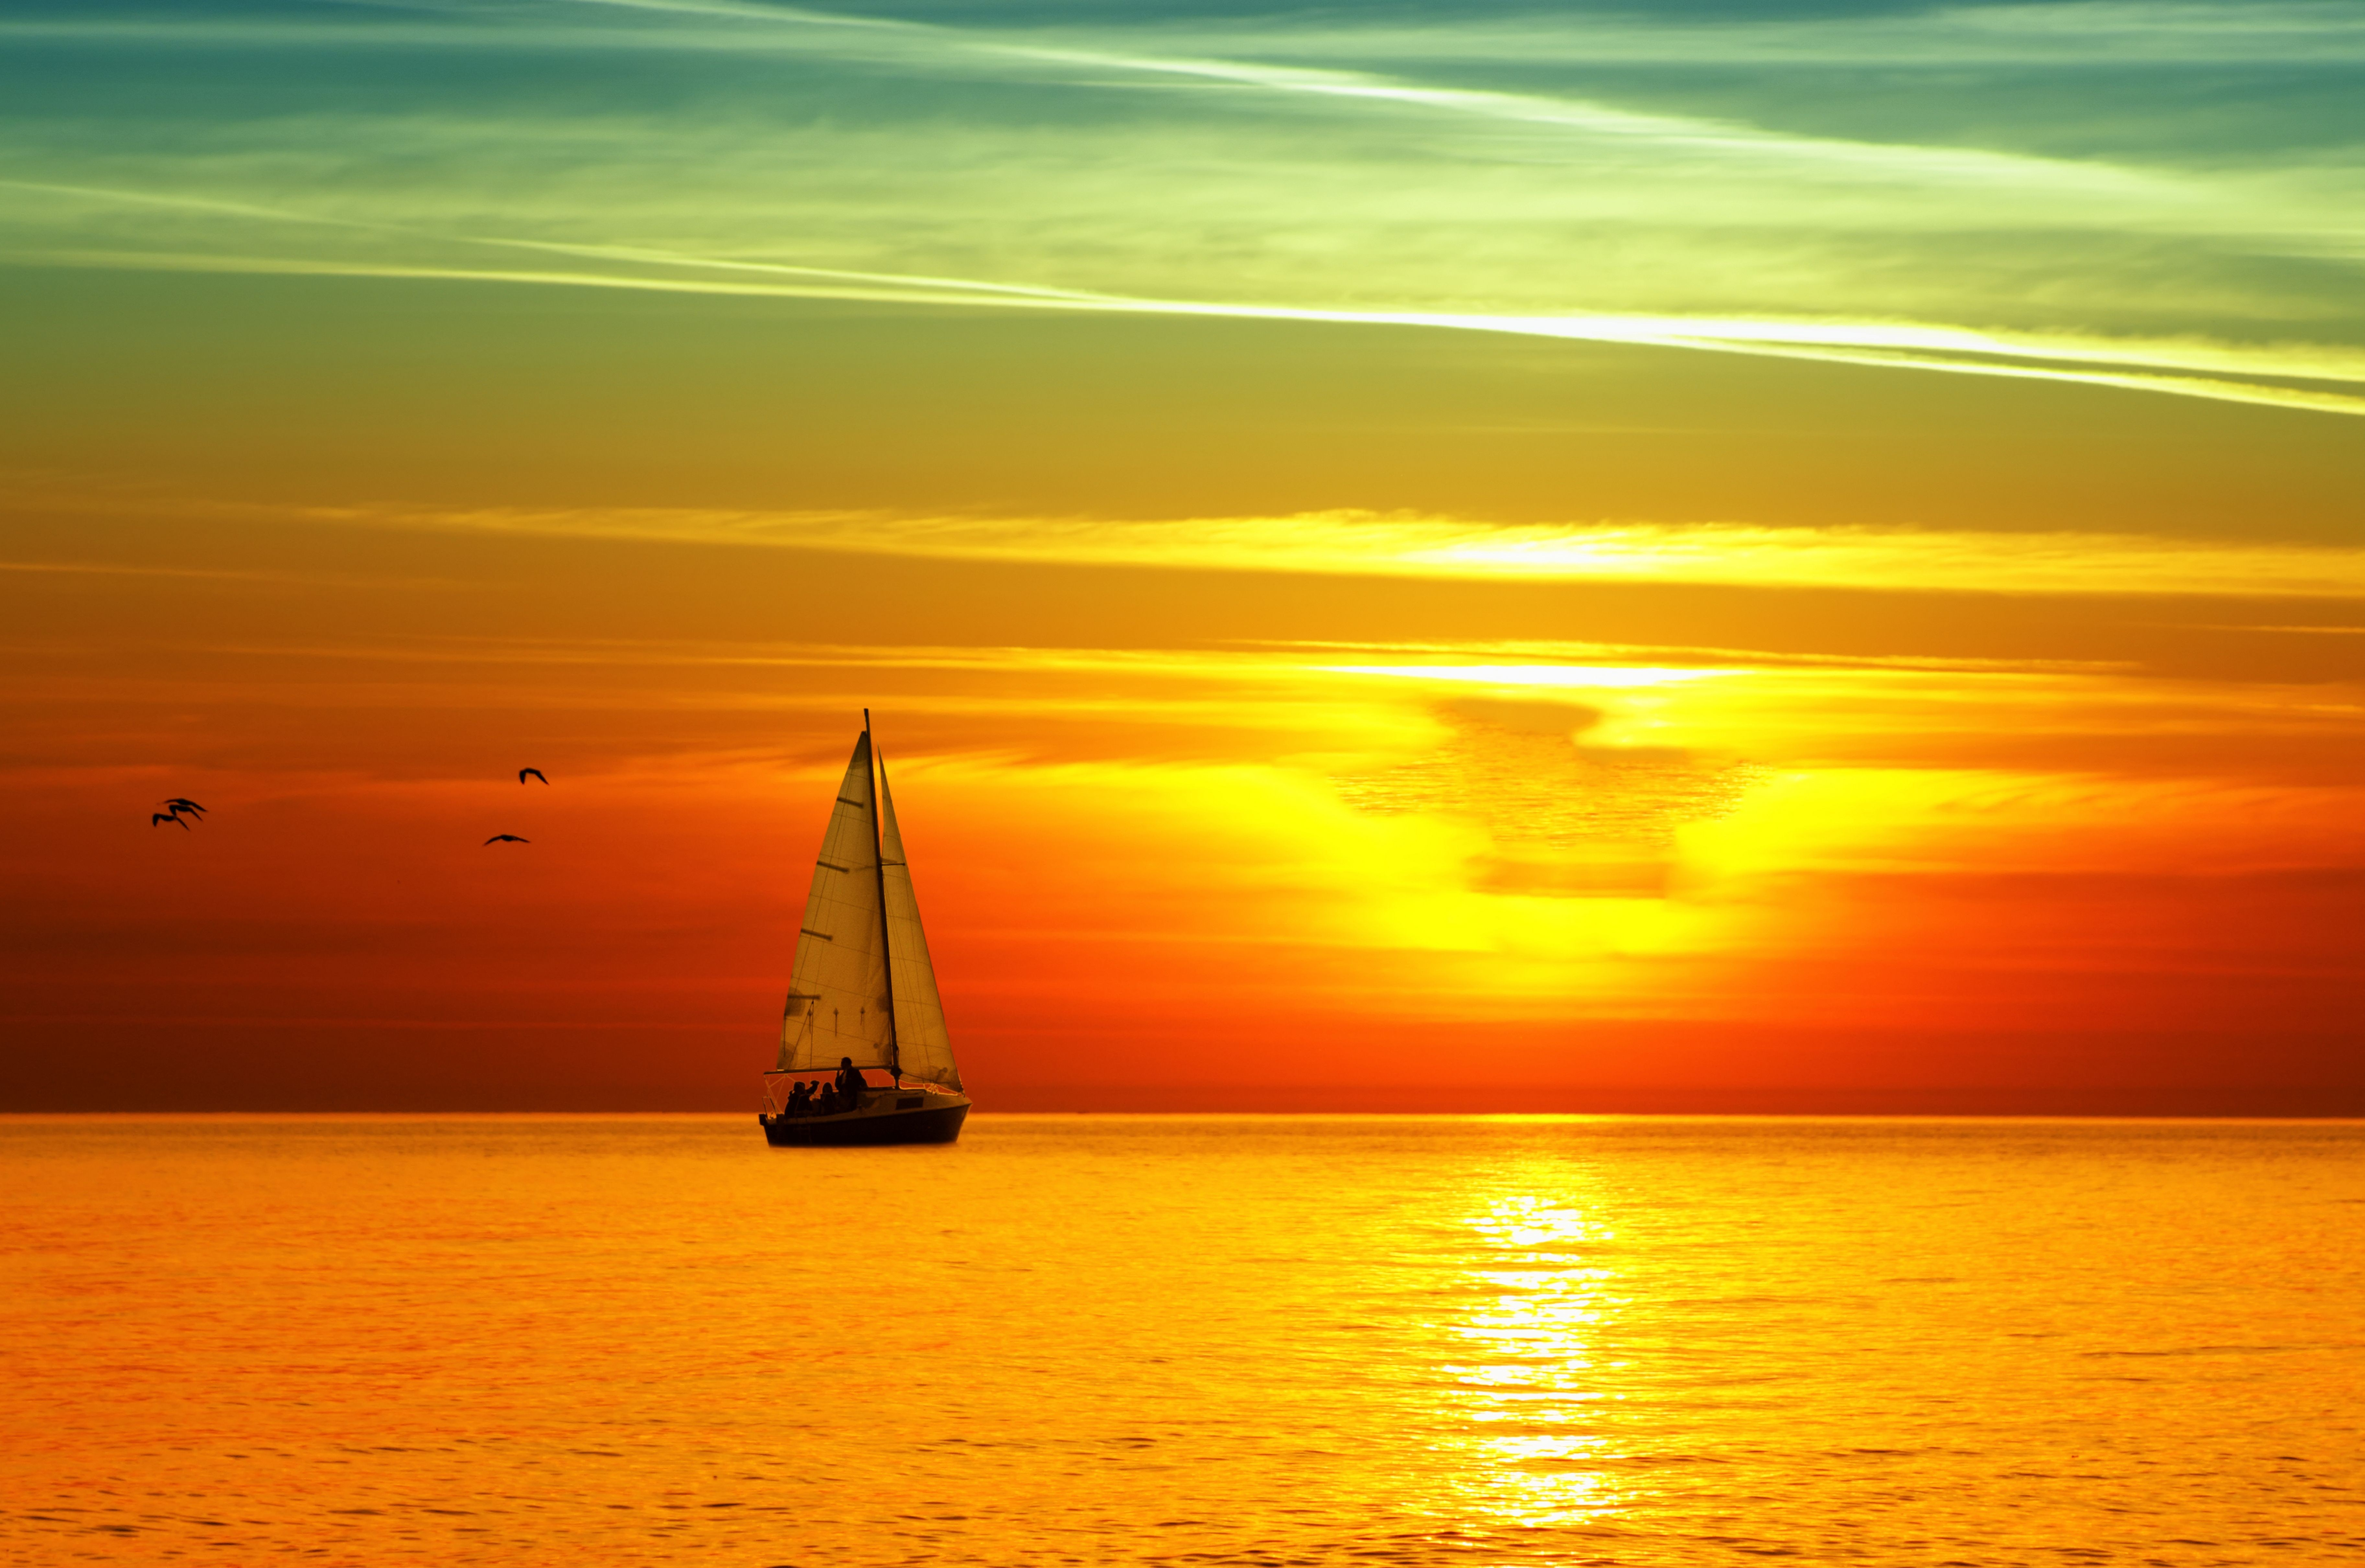 Sailboat wallpapers pictures images for Sfondi desktop tramonti mare